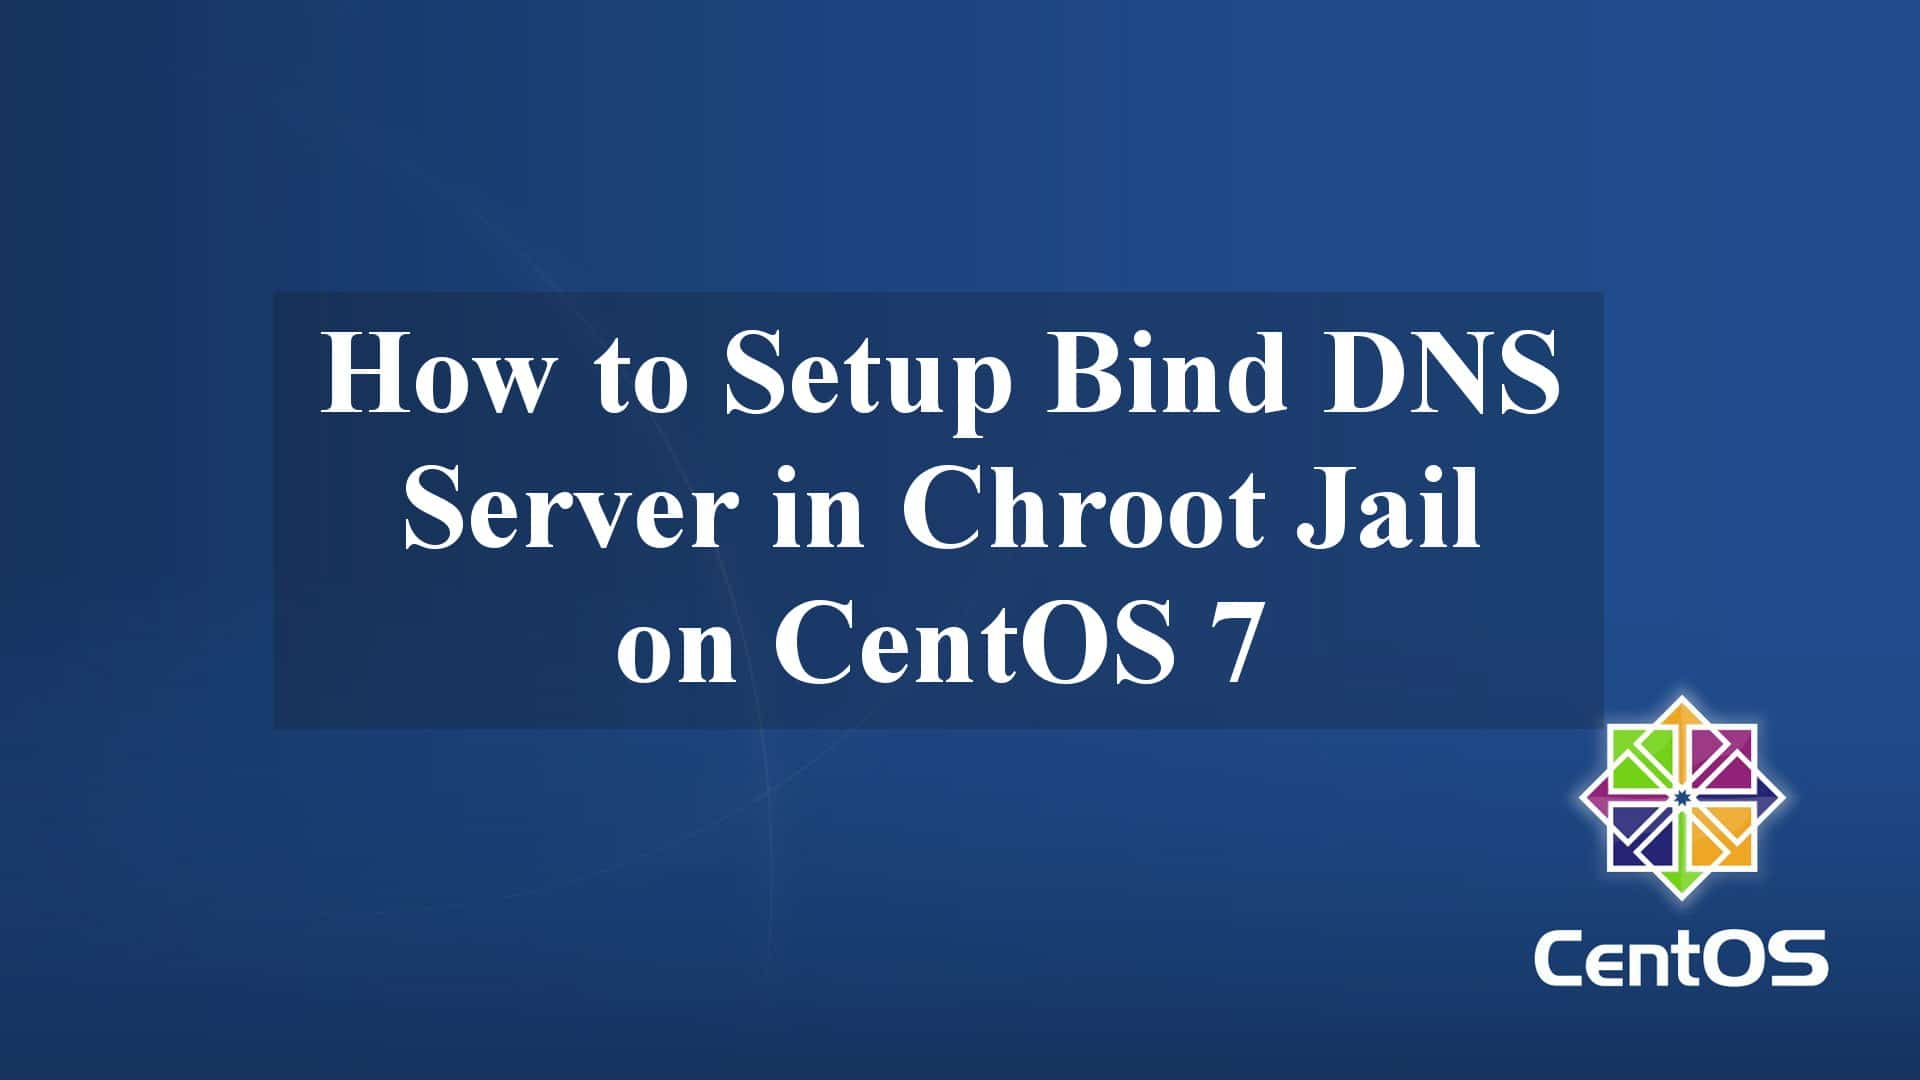 How to Setup Bind DNS Server in Chroot Jail on CentOS 7